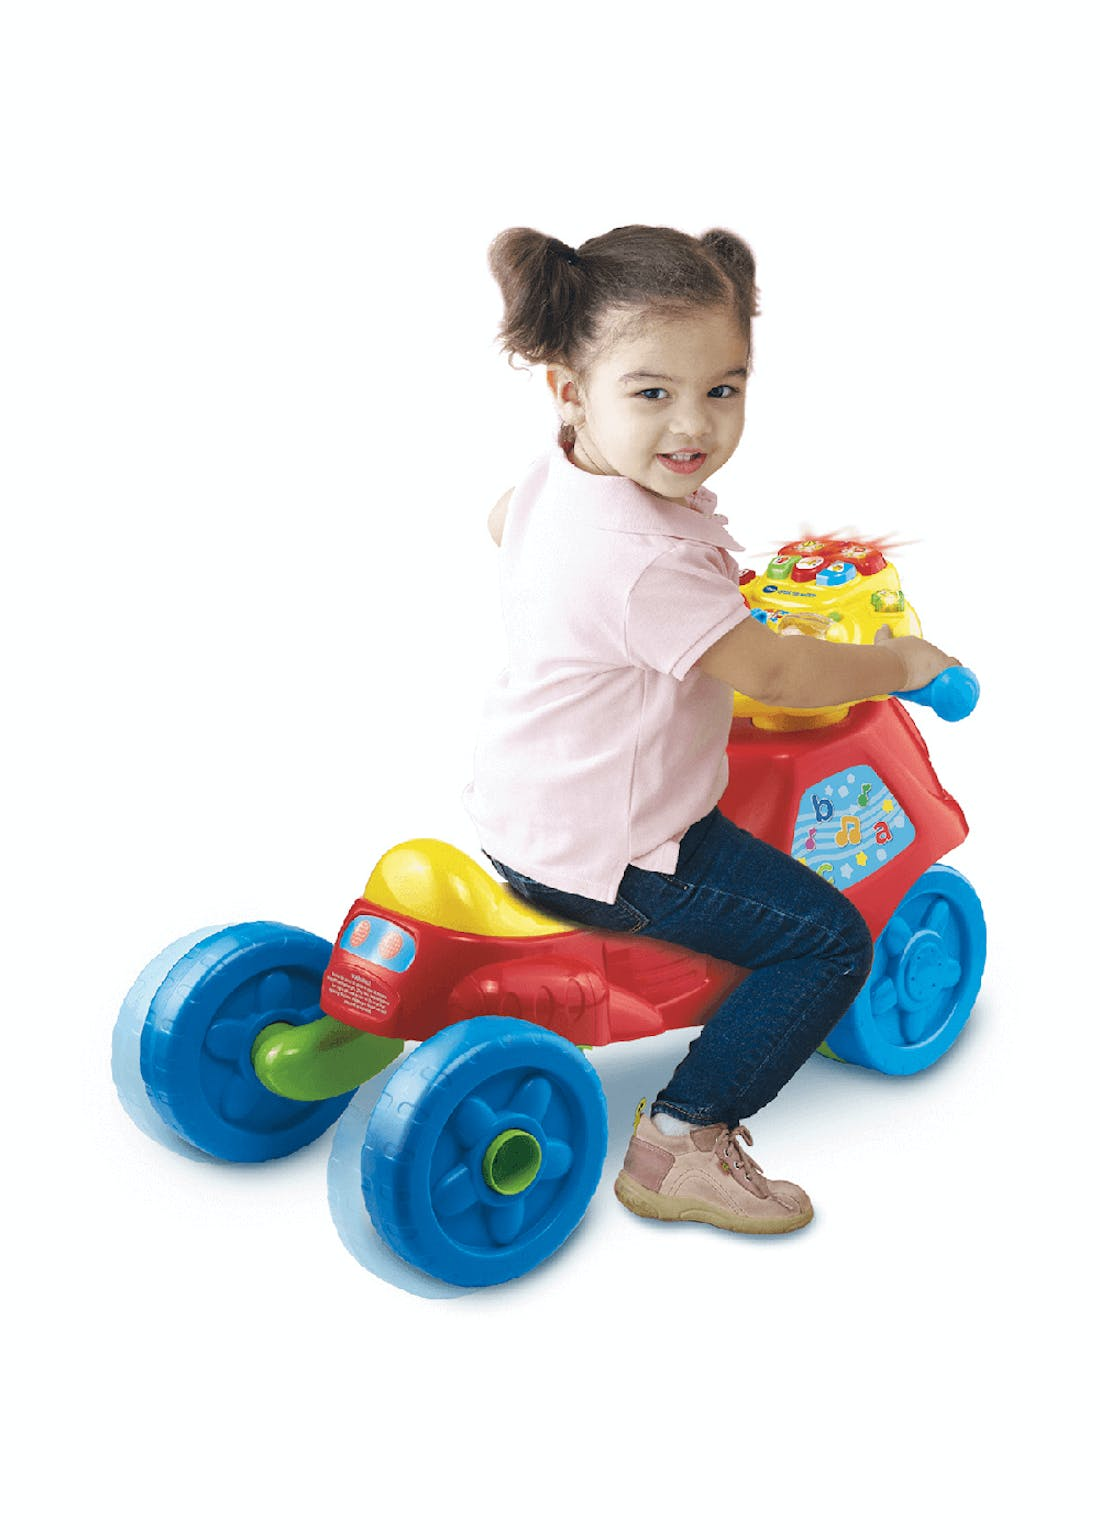 VTech 2-in-1 Tri to Bike (58.5cm x 40.5cm x 20.5cm)